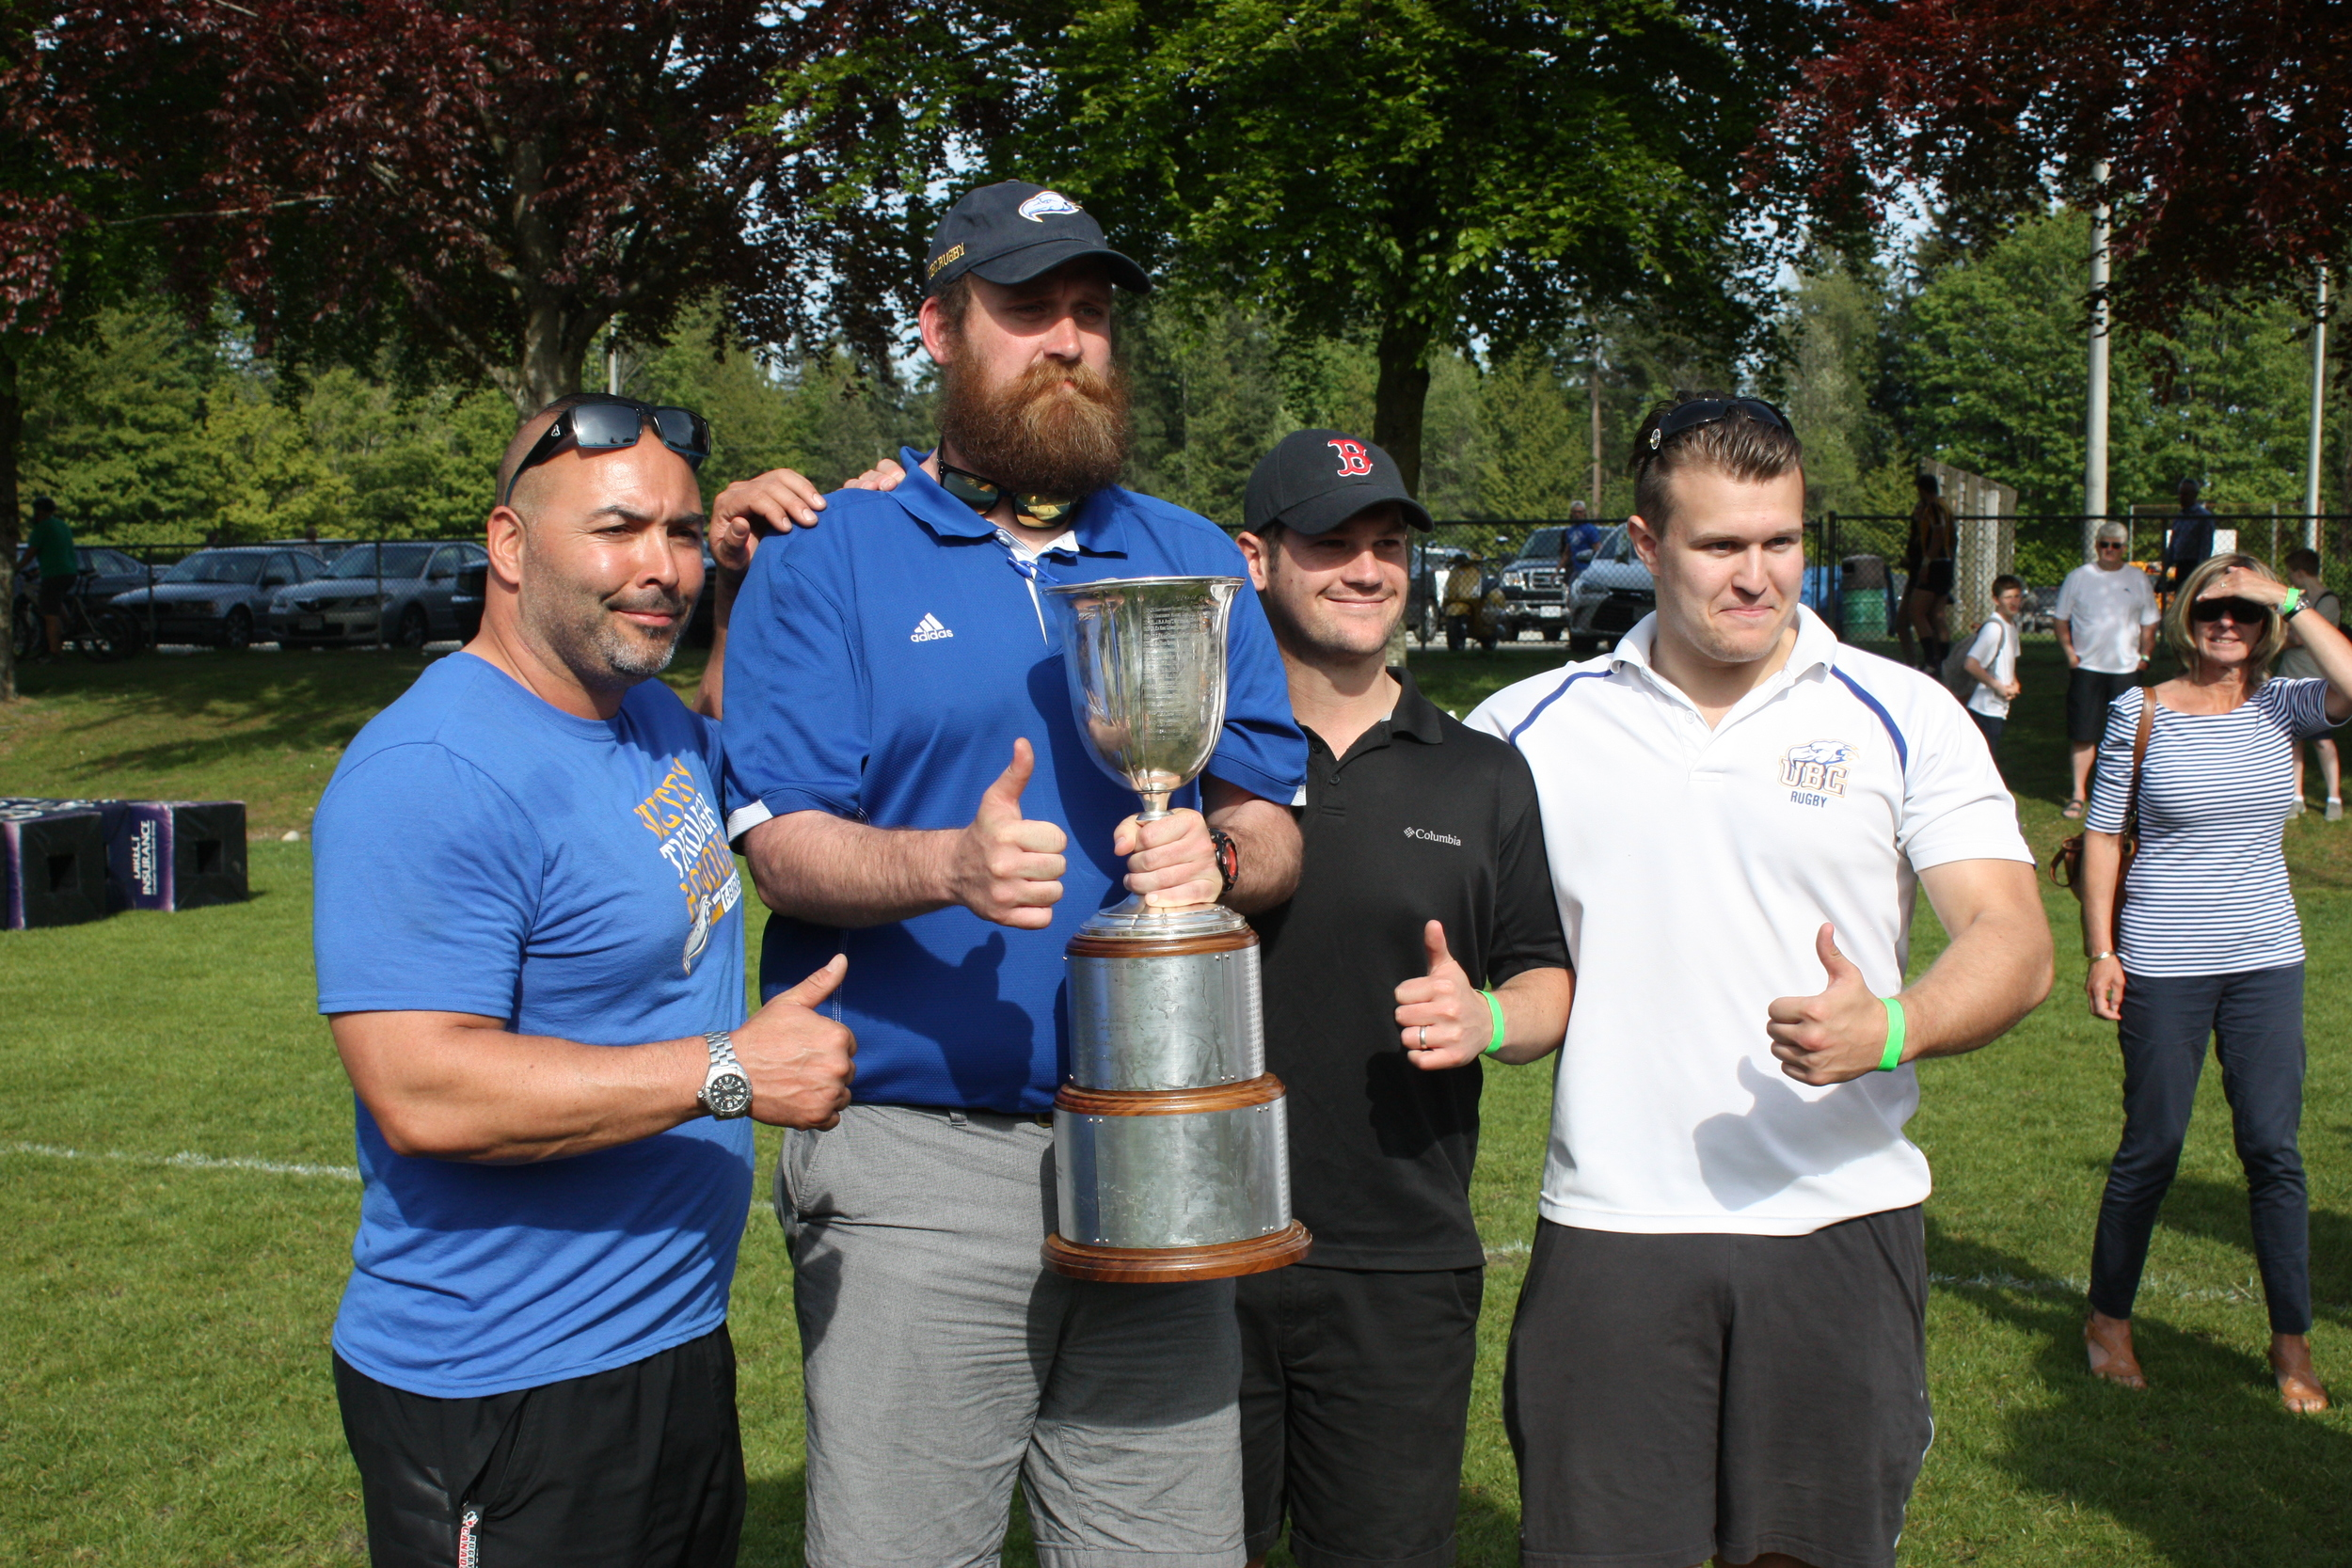 CUP WINNING ubc cOACHES FROM LEFT TO RIGHT: raMESES LANGSTON, CURRY HITCHBORN, LUKE GRAY AND FORD CHAMBERLAIN